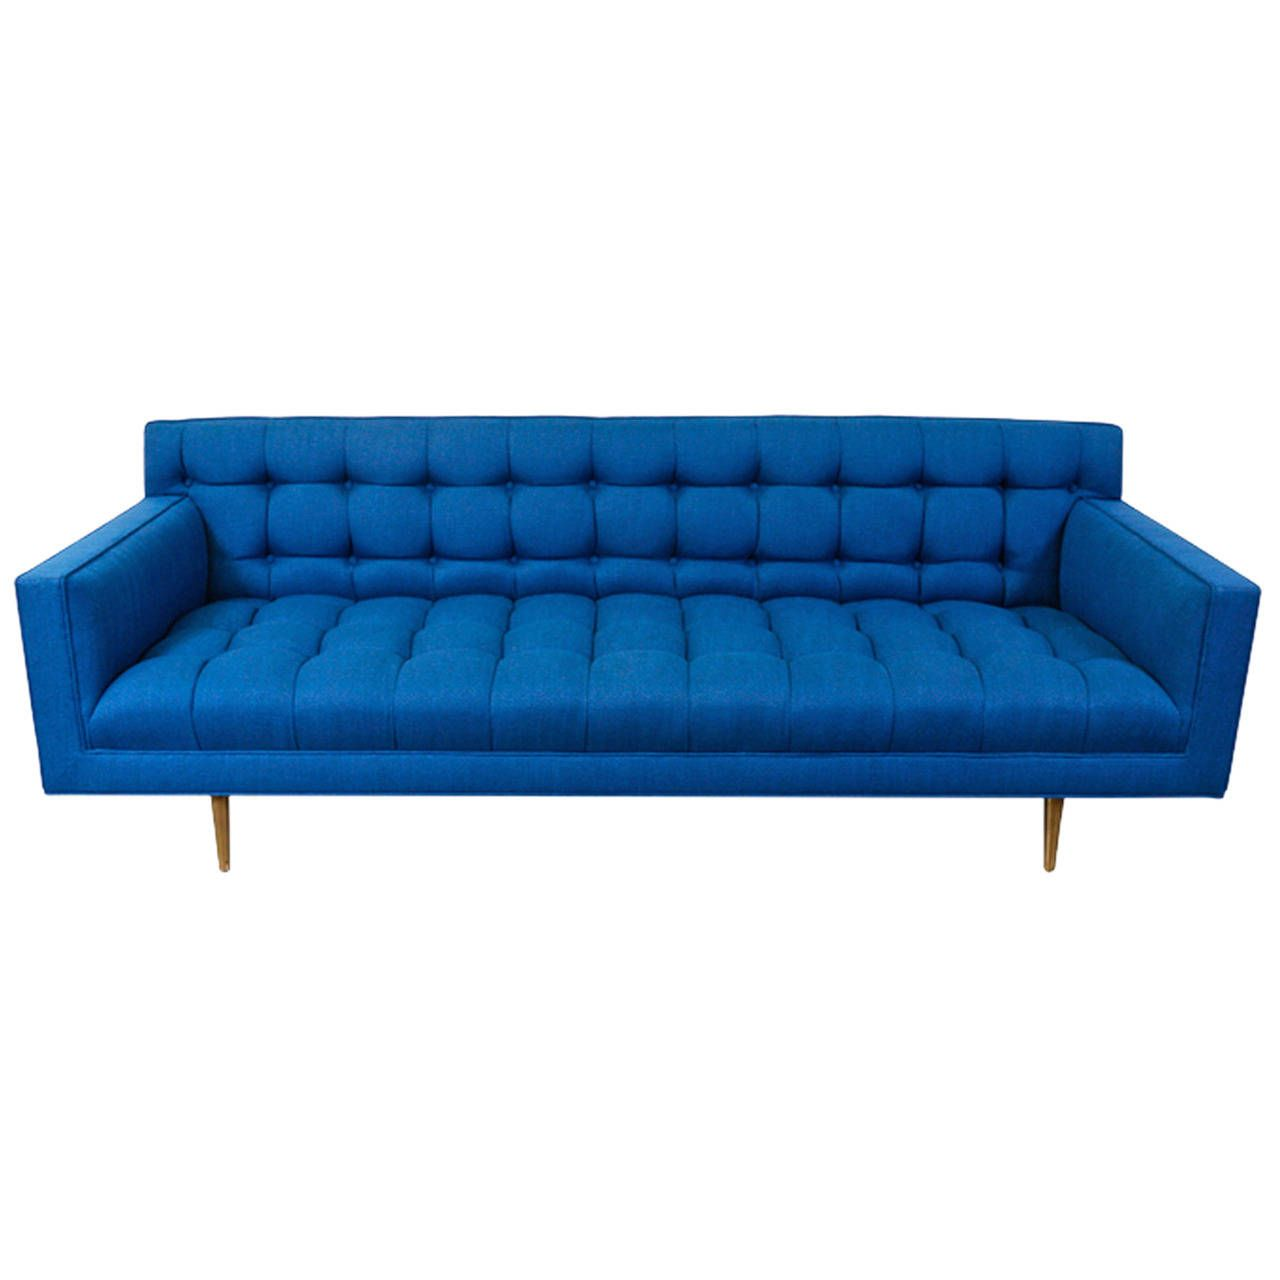 Sofa Vintage A Vendre Edward J Wormley Model 5136 Sofa With Brass Legs For Dunbar